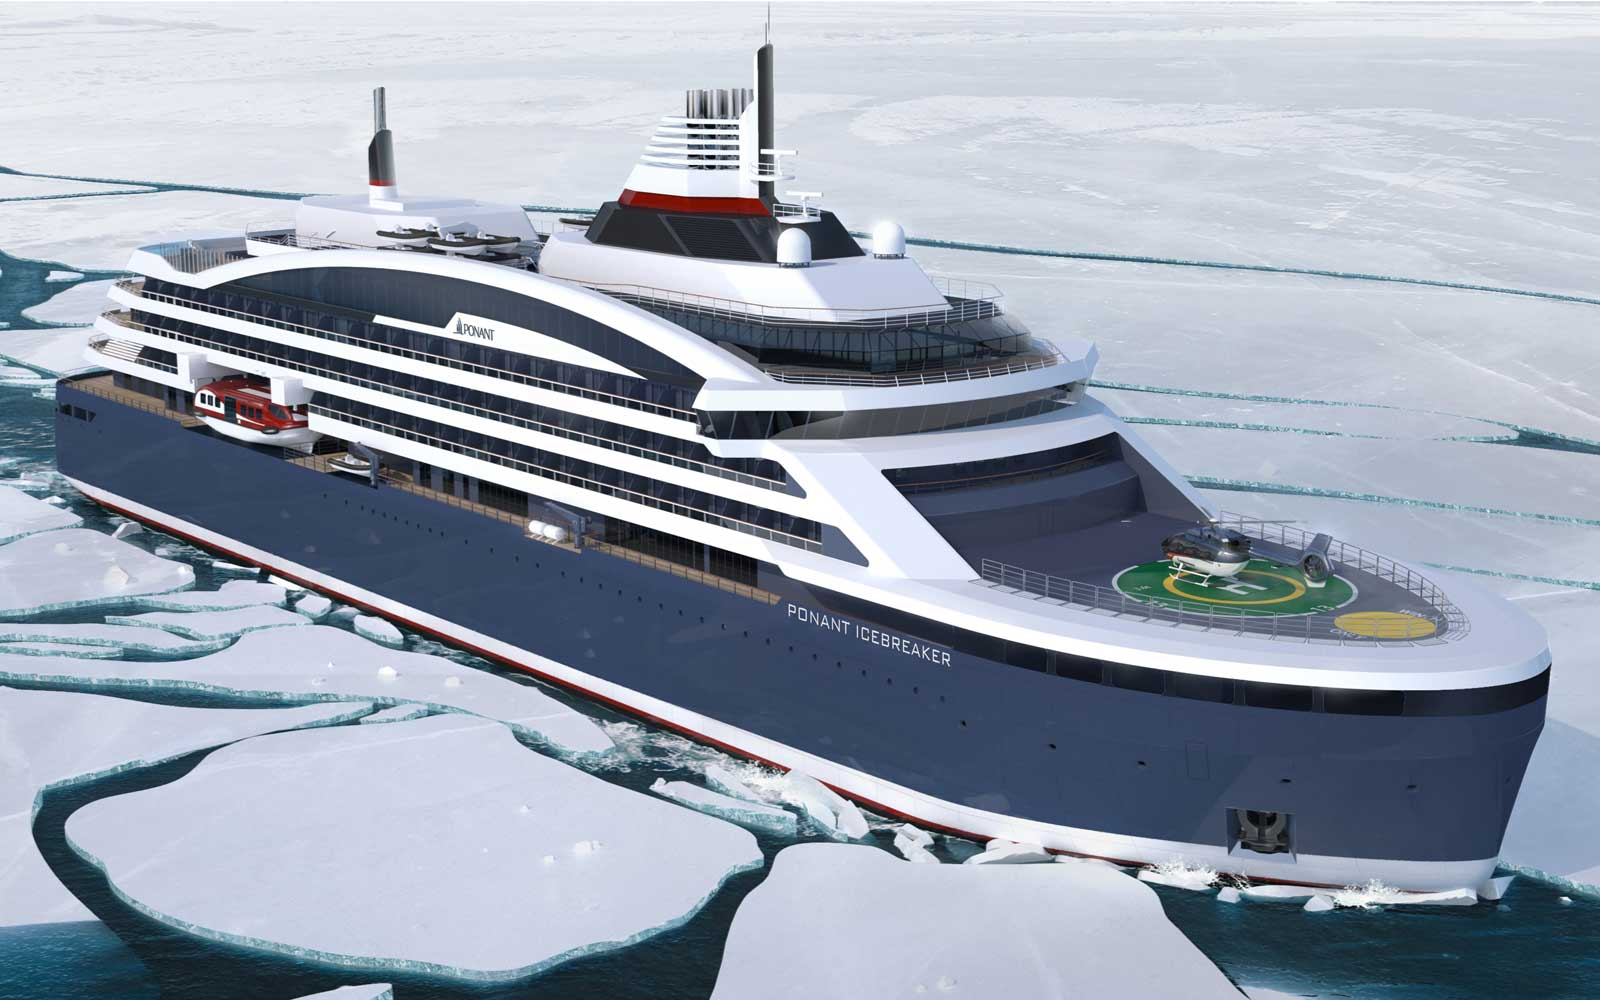 Ponant New Polar Expedition Ship